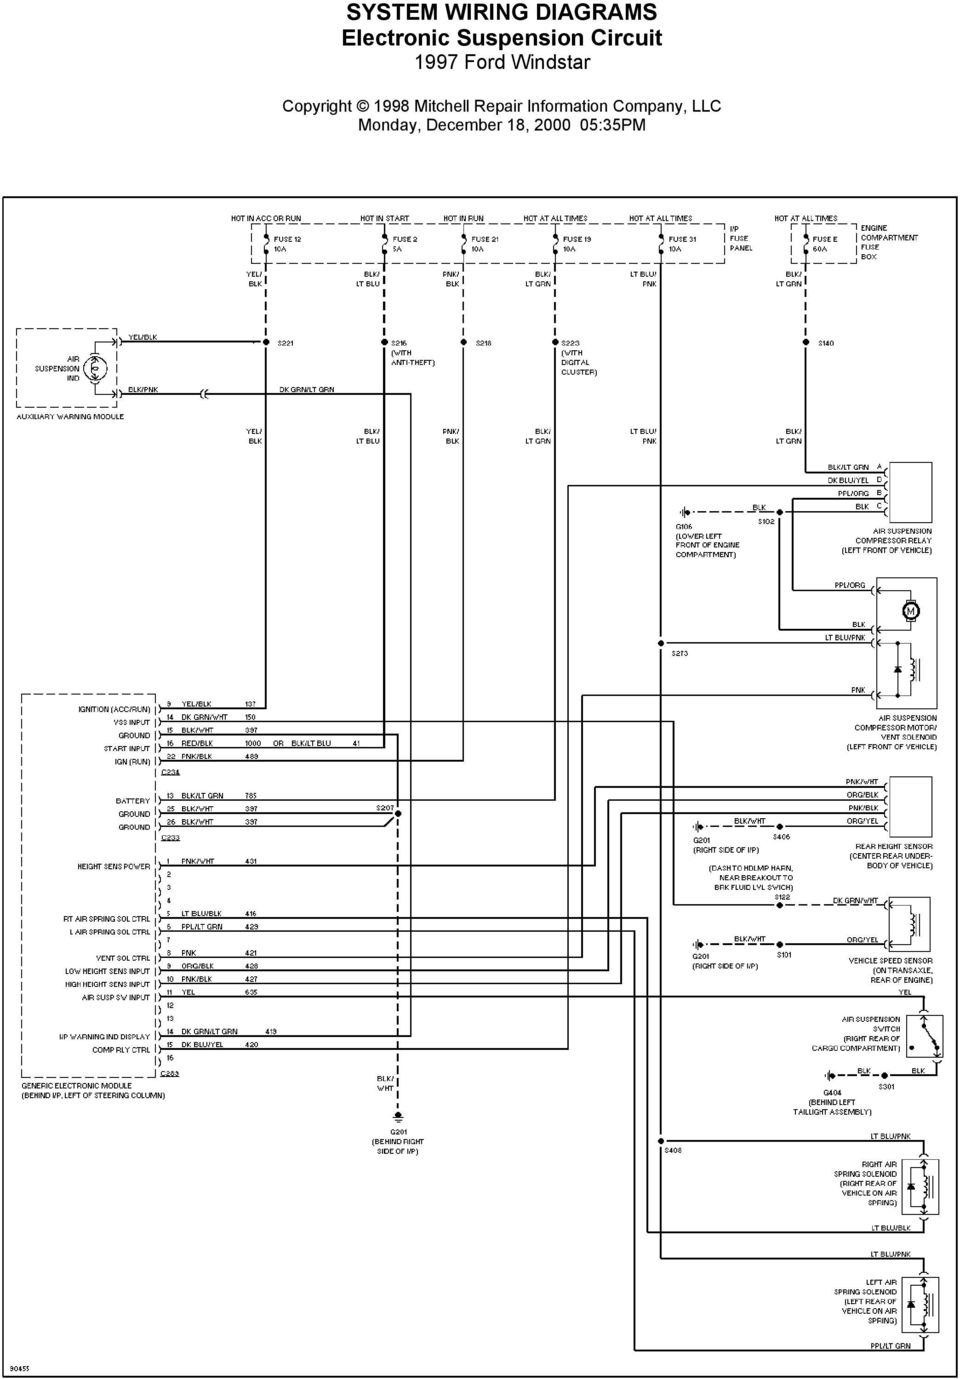 System Wiring Diagrams Air Conditioning Circuits 1997 Ford Windstar Year 9 Circuit Monday